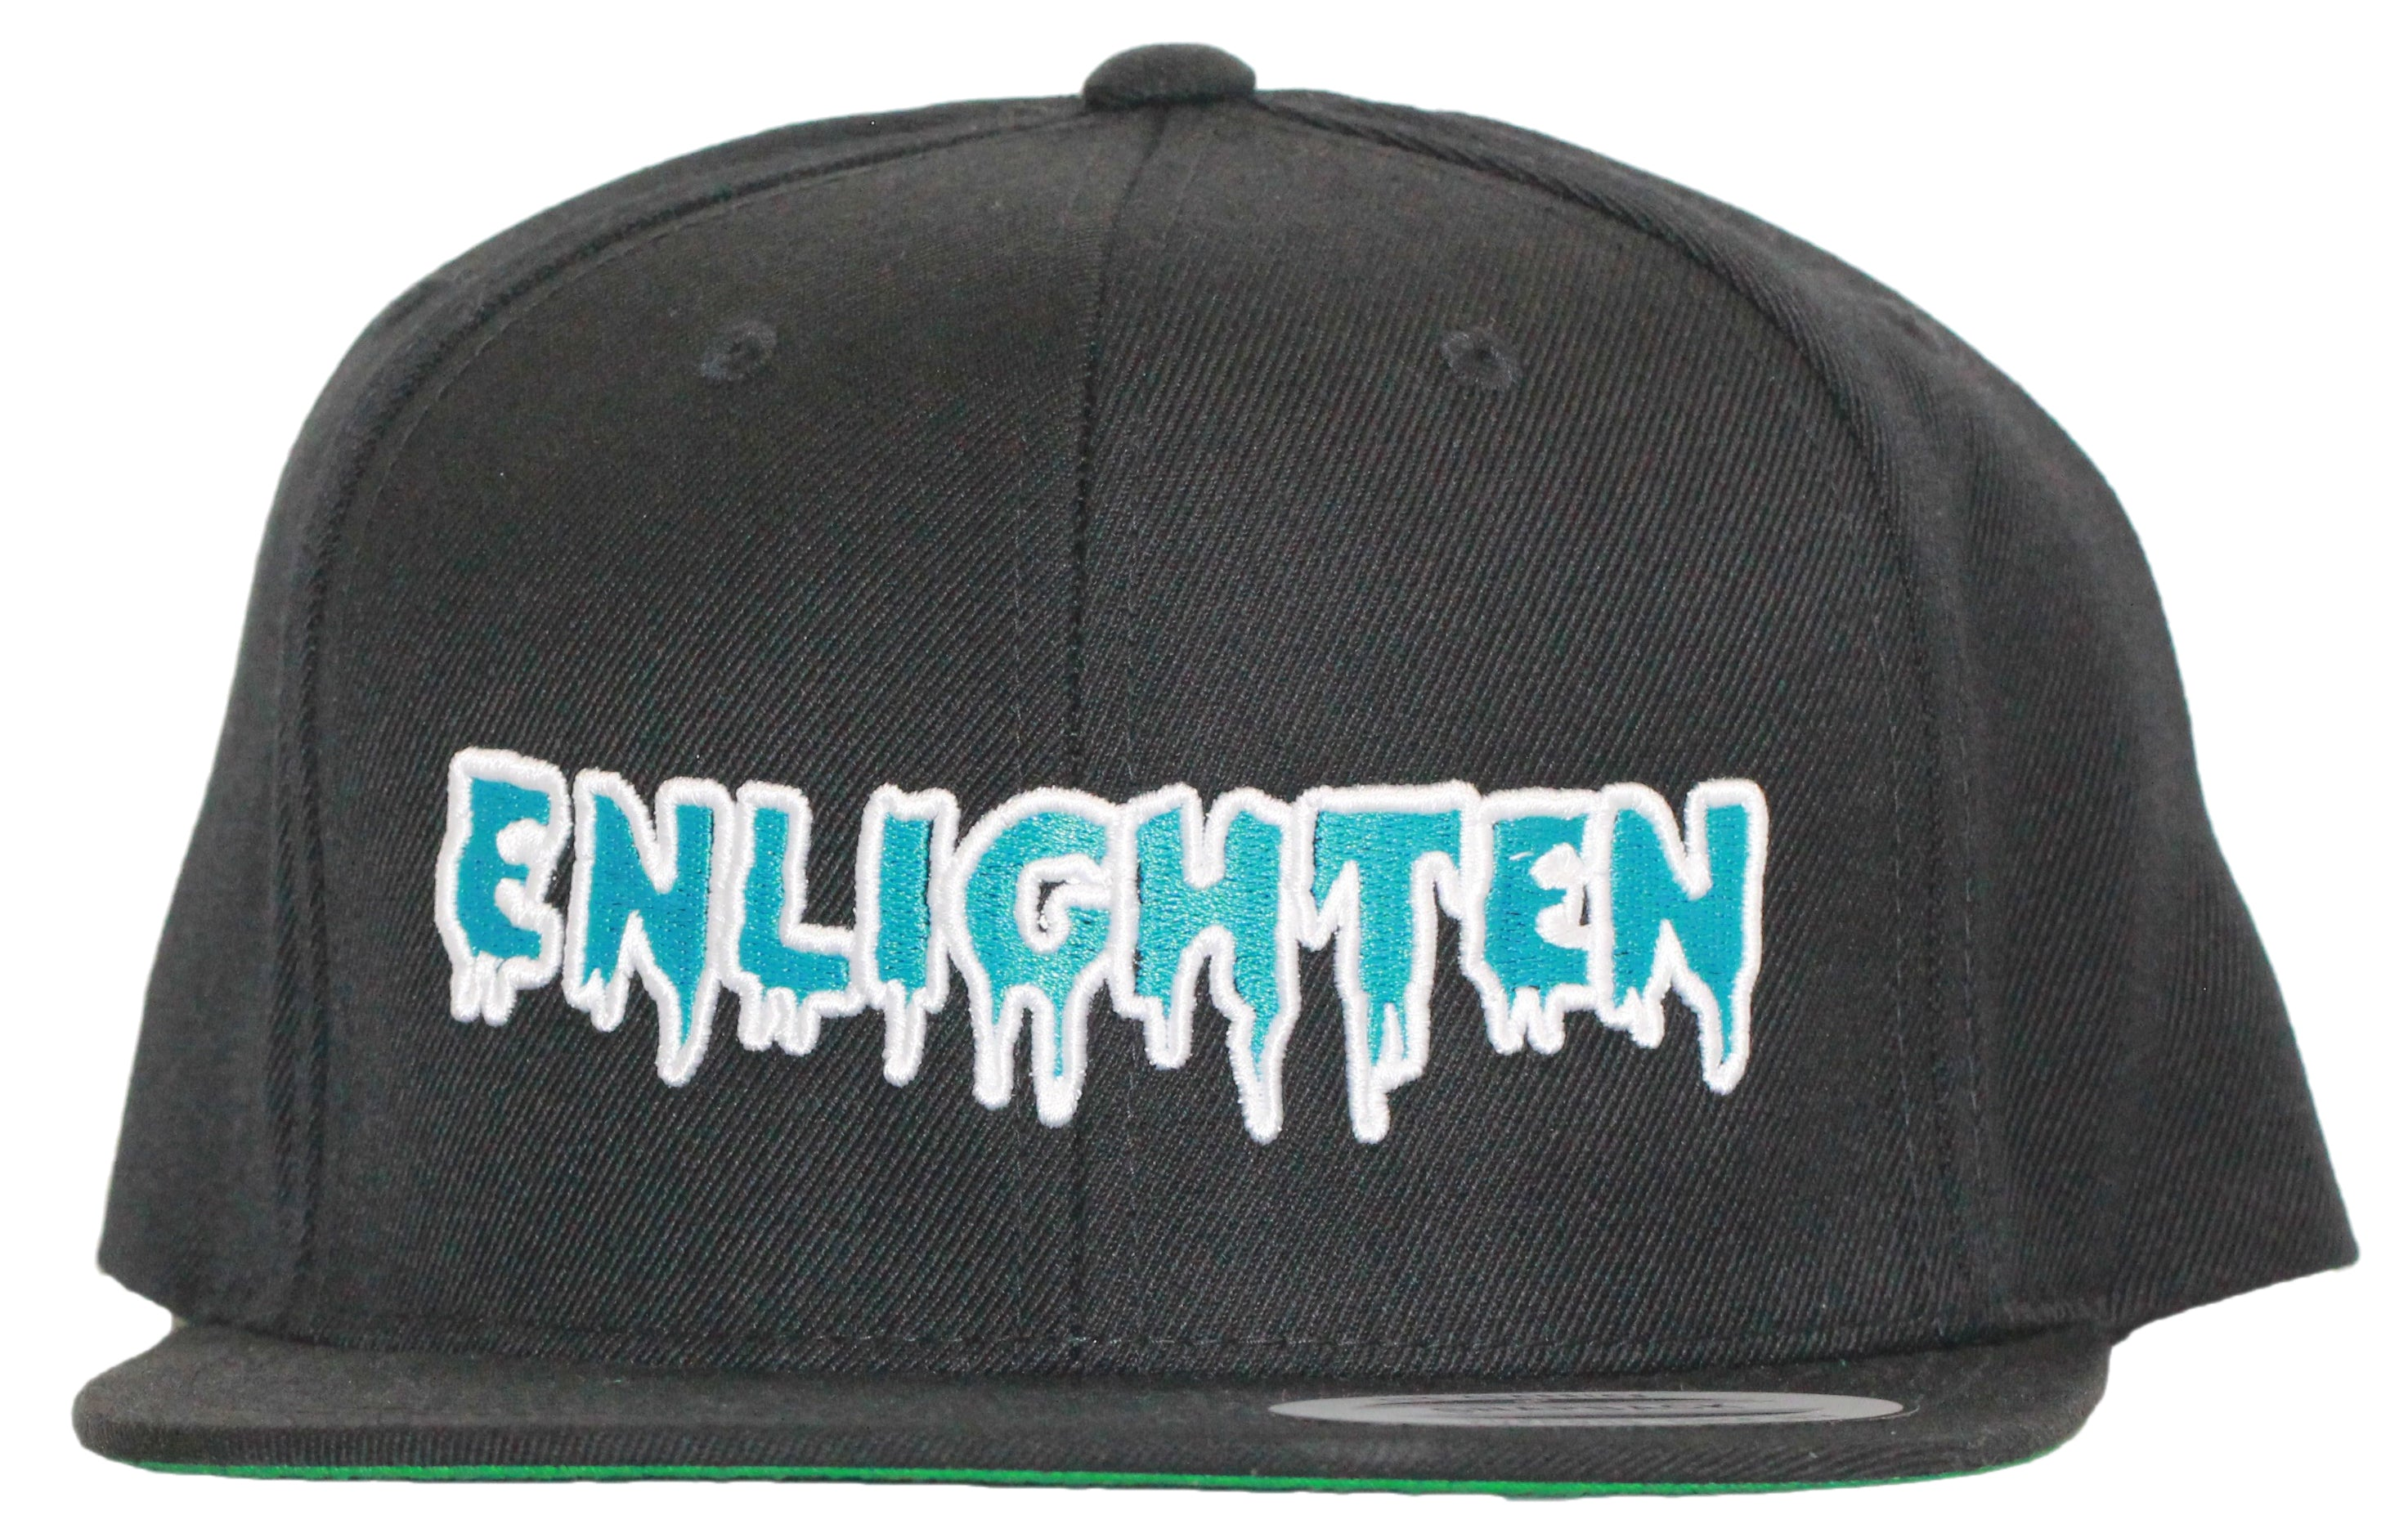 hat made to spread the message of enlightenment, available at our clothing store.